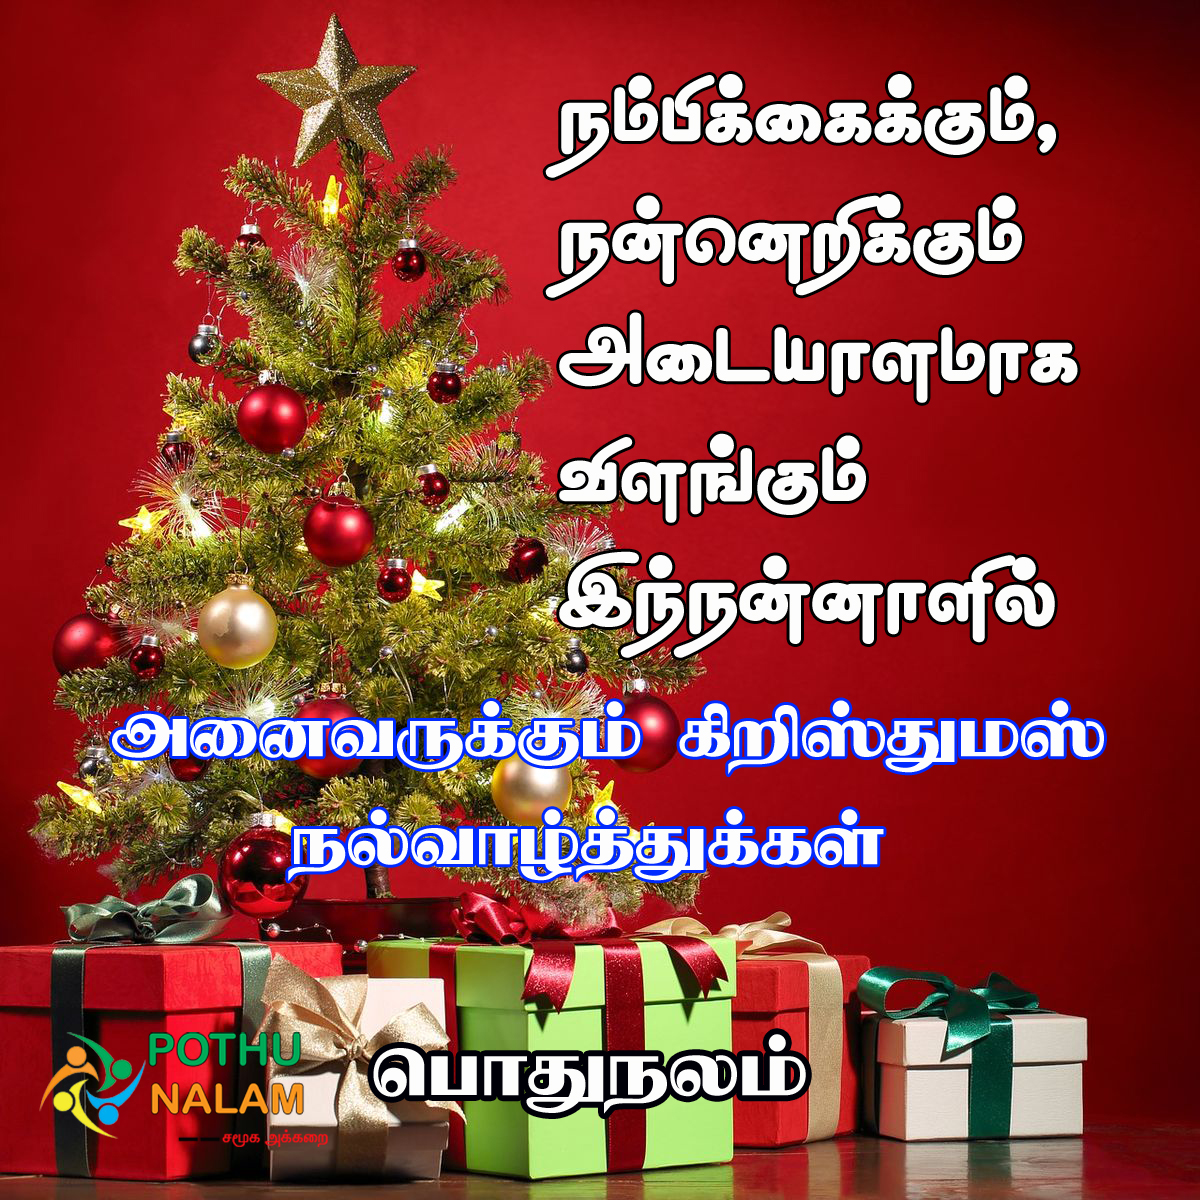 Christmas wishes 2020 in Tamil